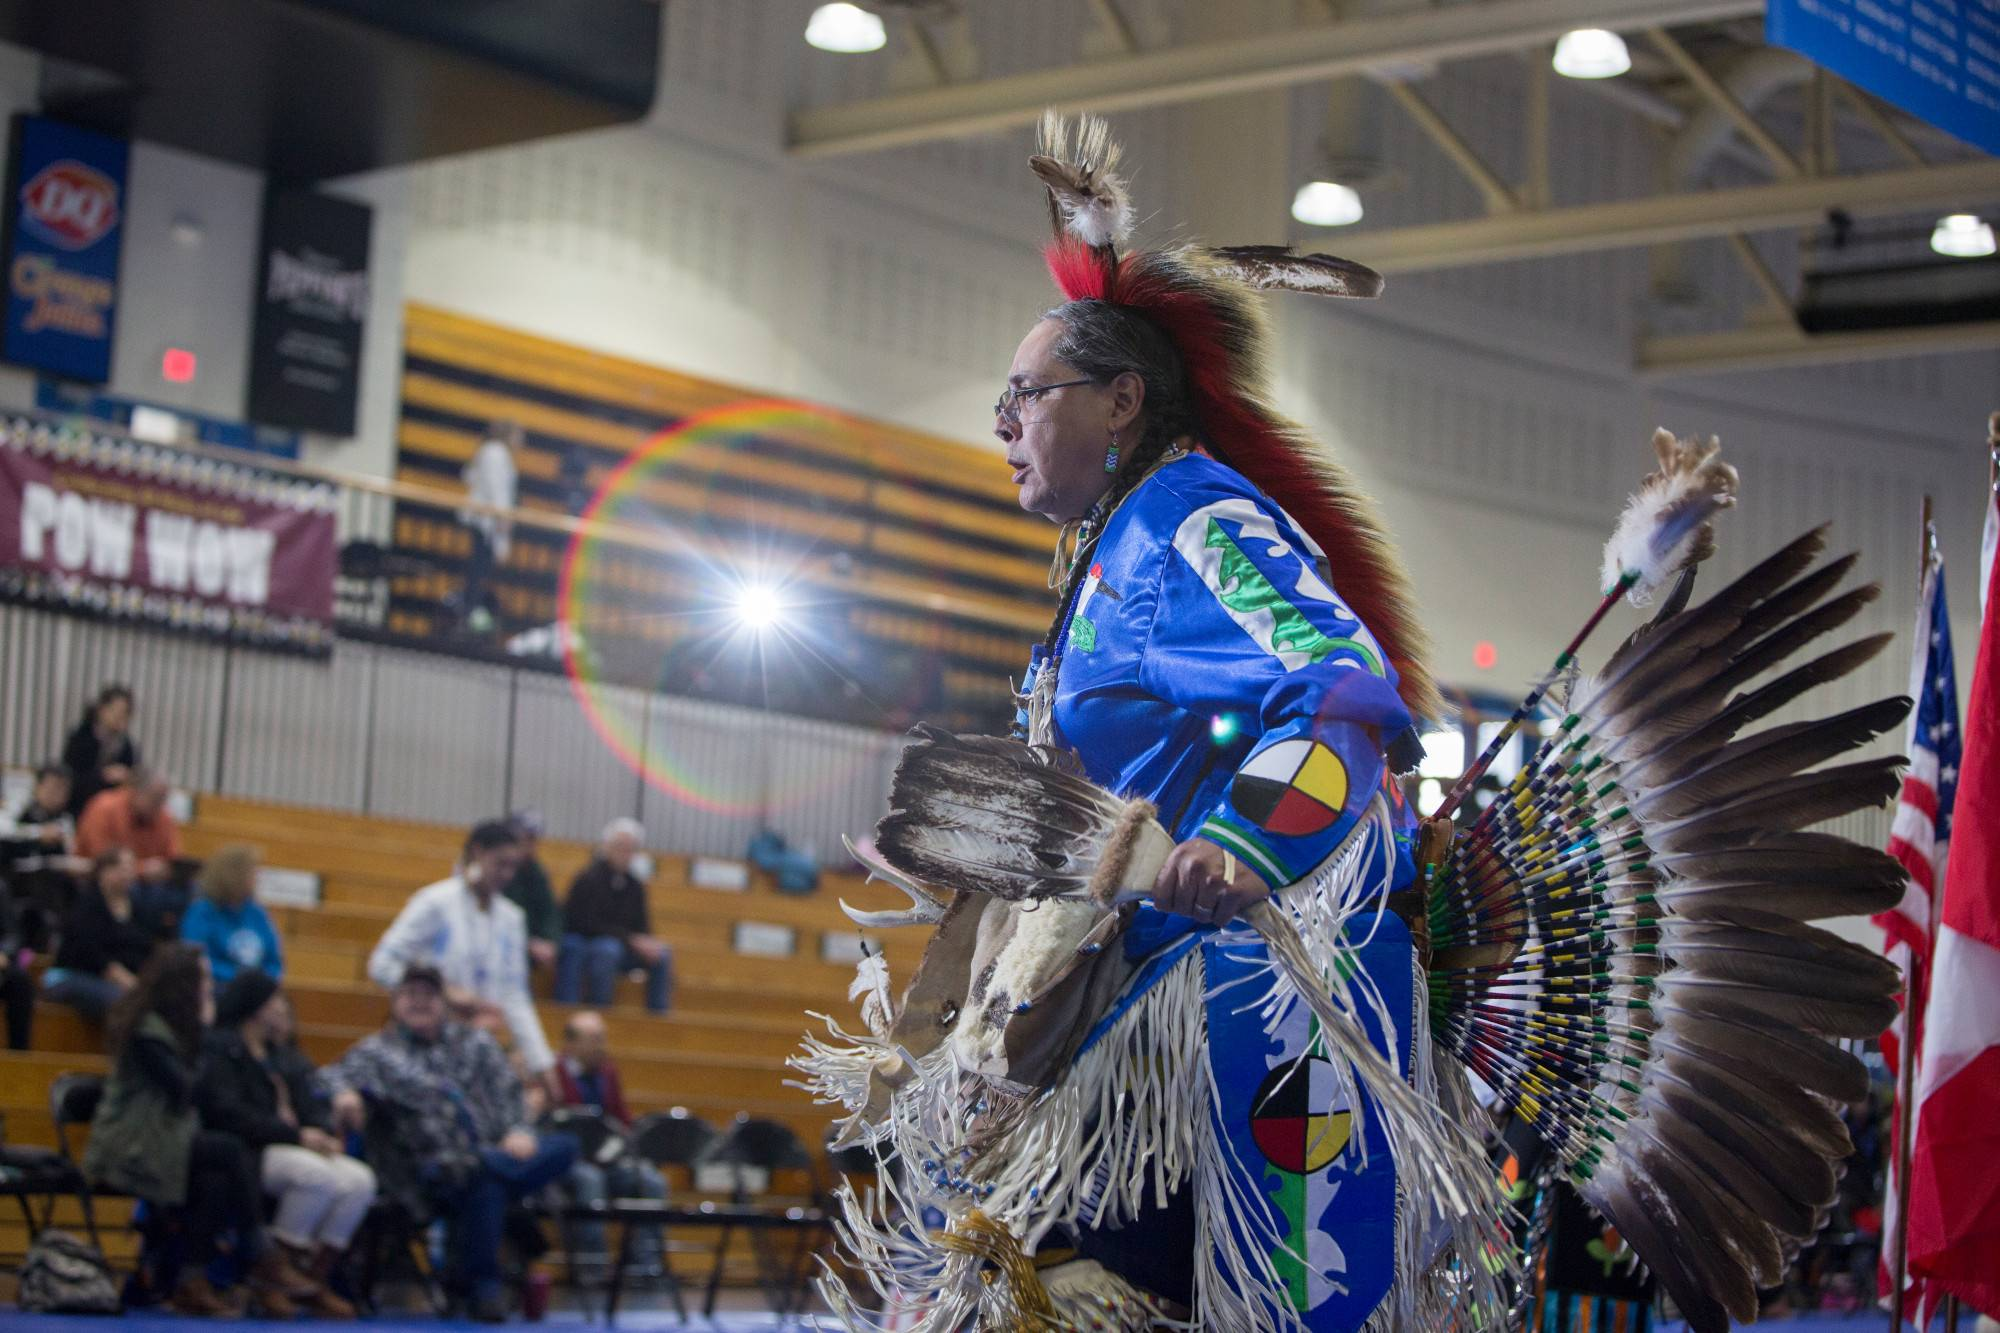 A Native American Pow Wow held by NAAC at GVSU.